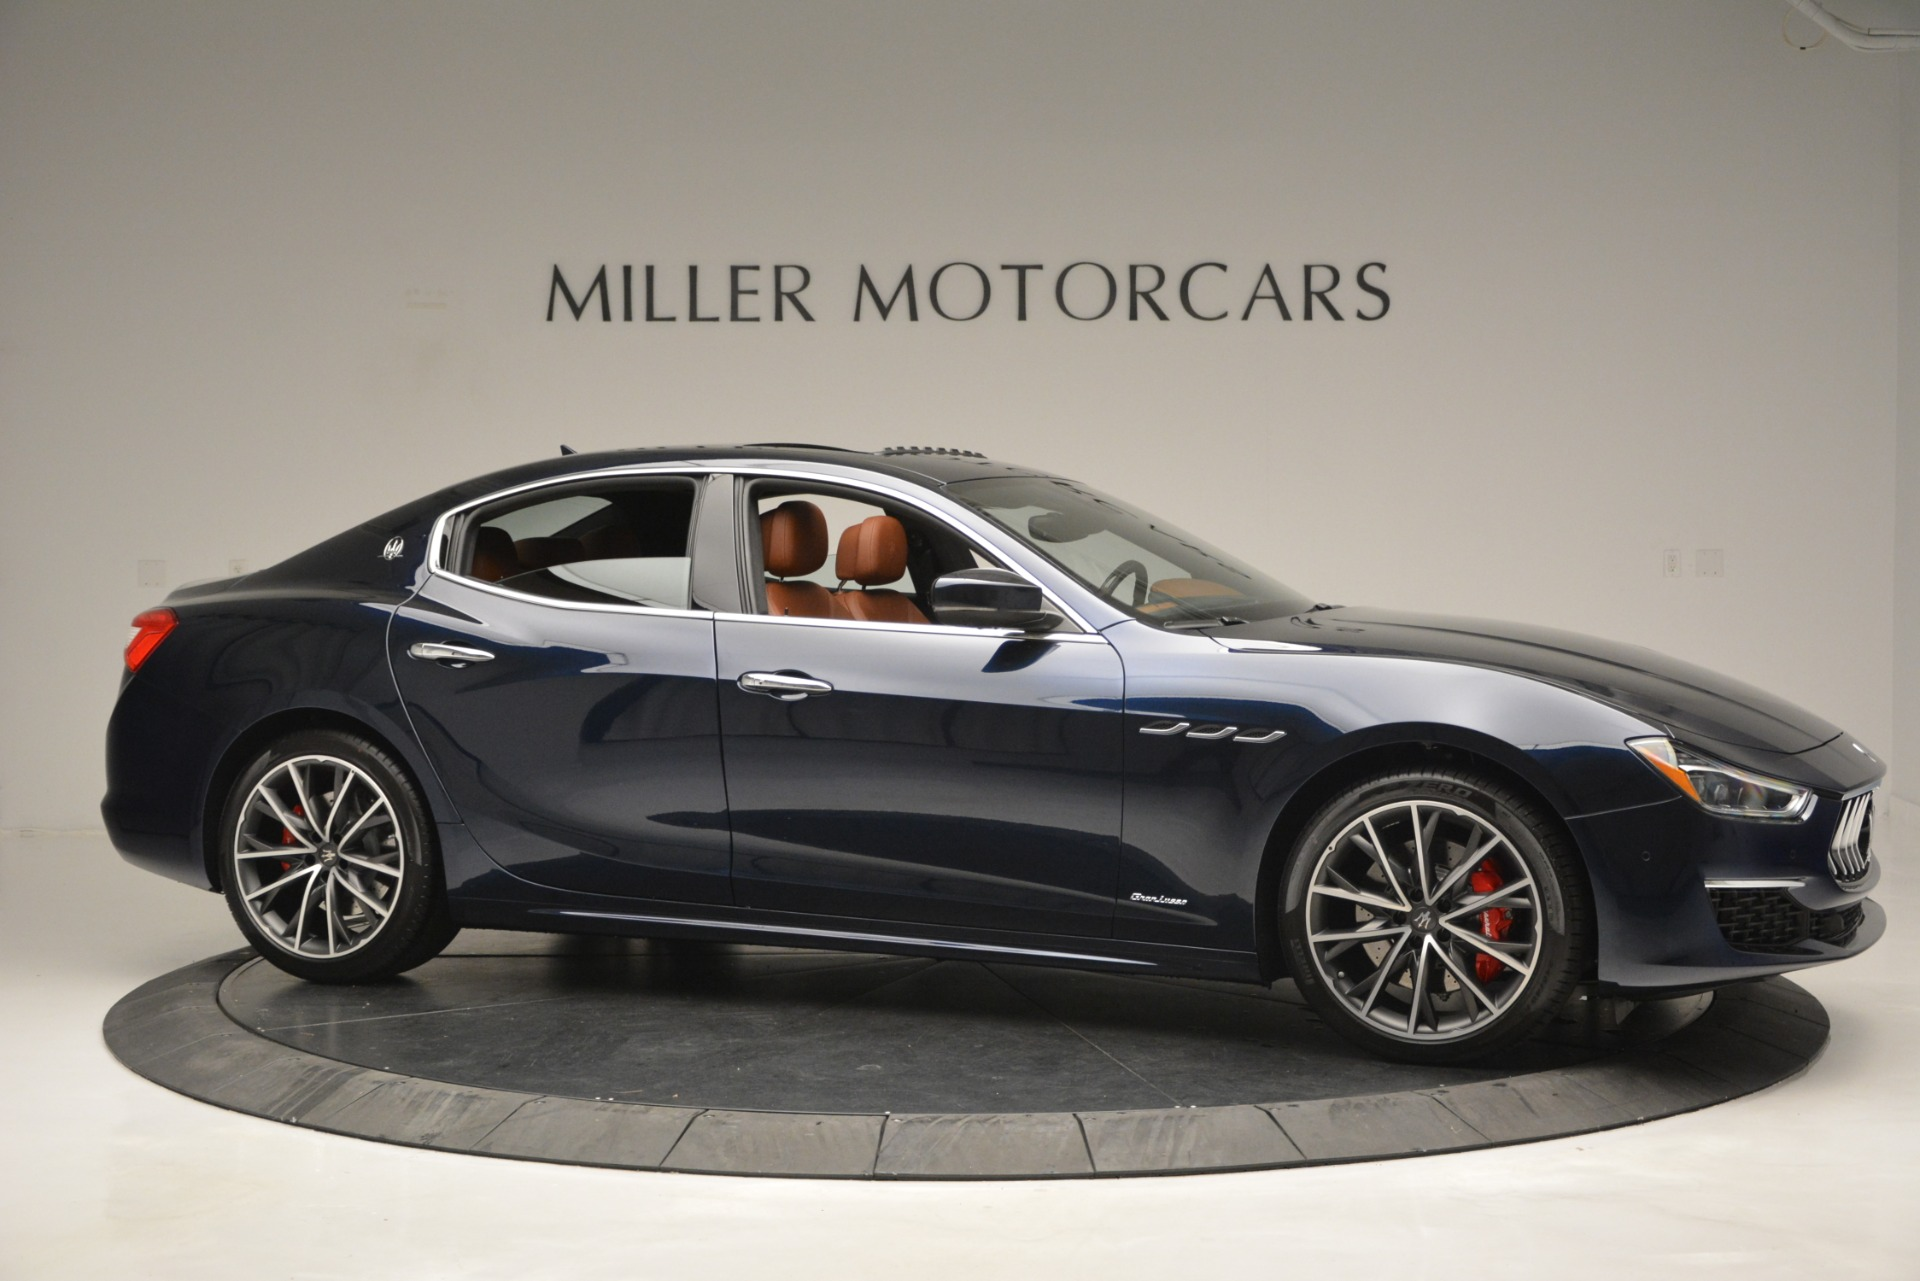 New 2019 Maserati Ghibli S Q4 GranLusso For Sale In Greenwich, CT 2882_p14